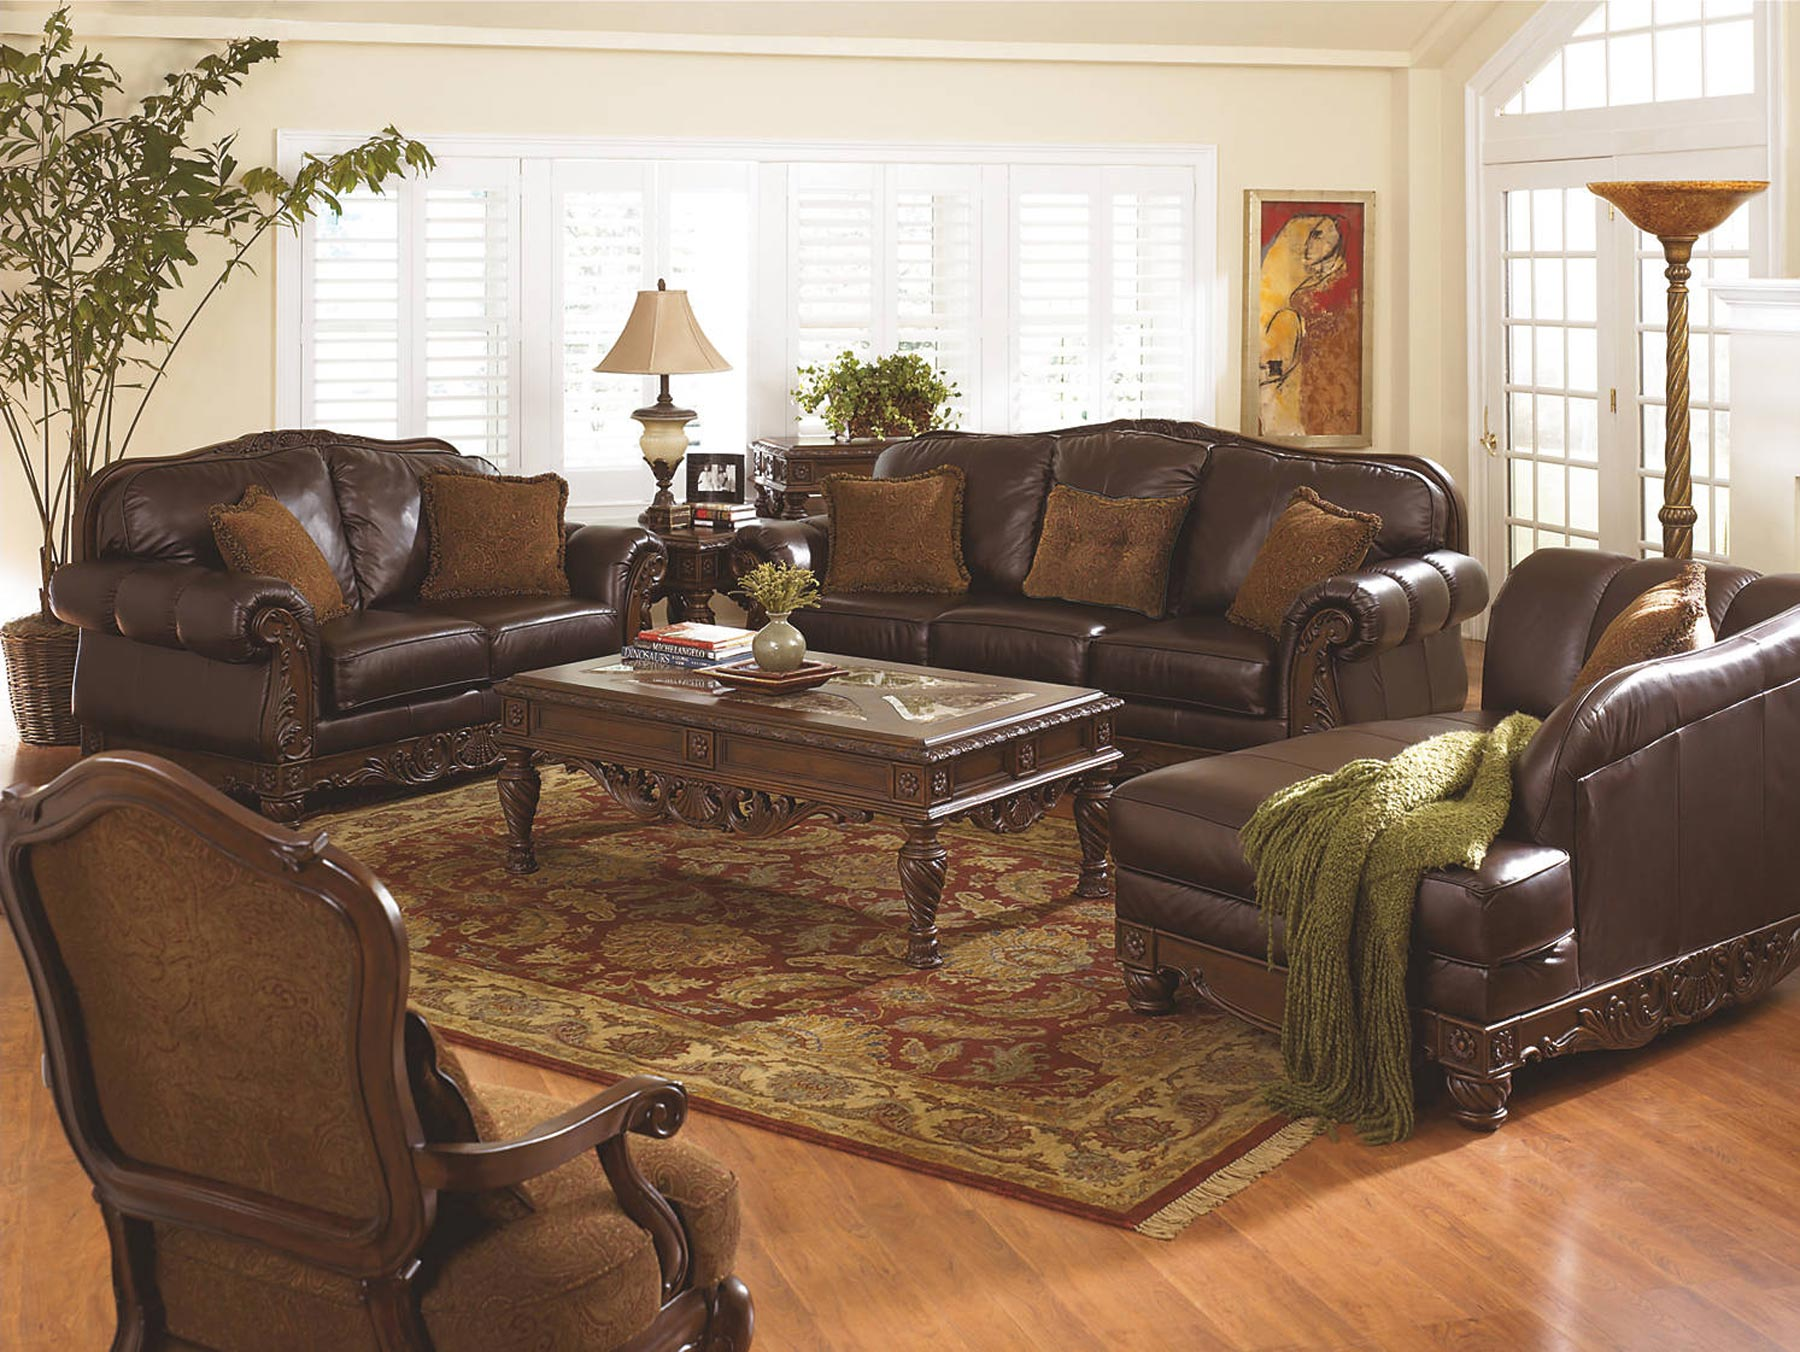 North S 2 Piece Living Room Set By Ashley Furniture